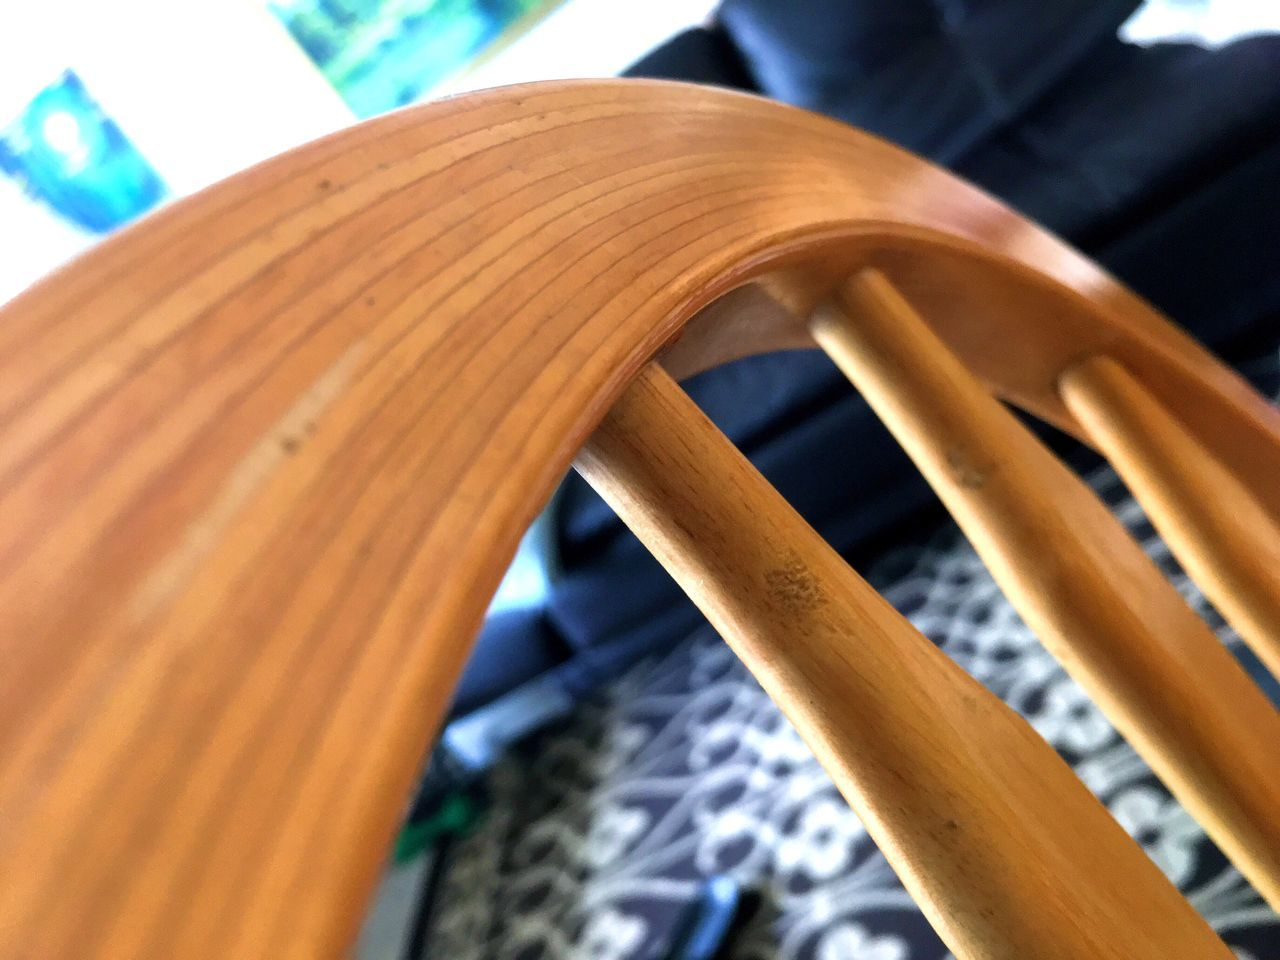 wood - material, no people, close-up, day, indoors, low angle view, architecture